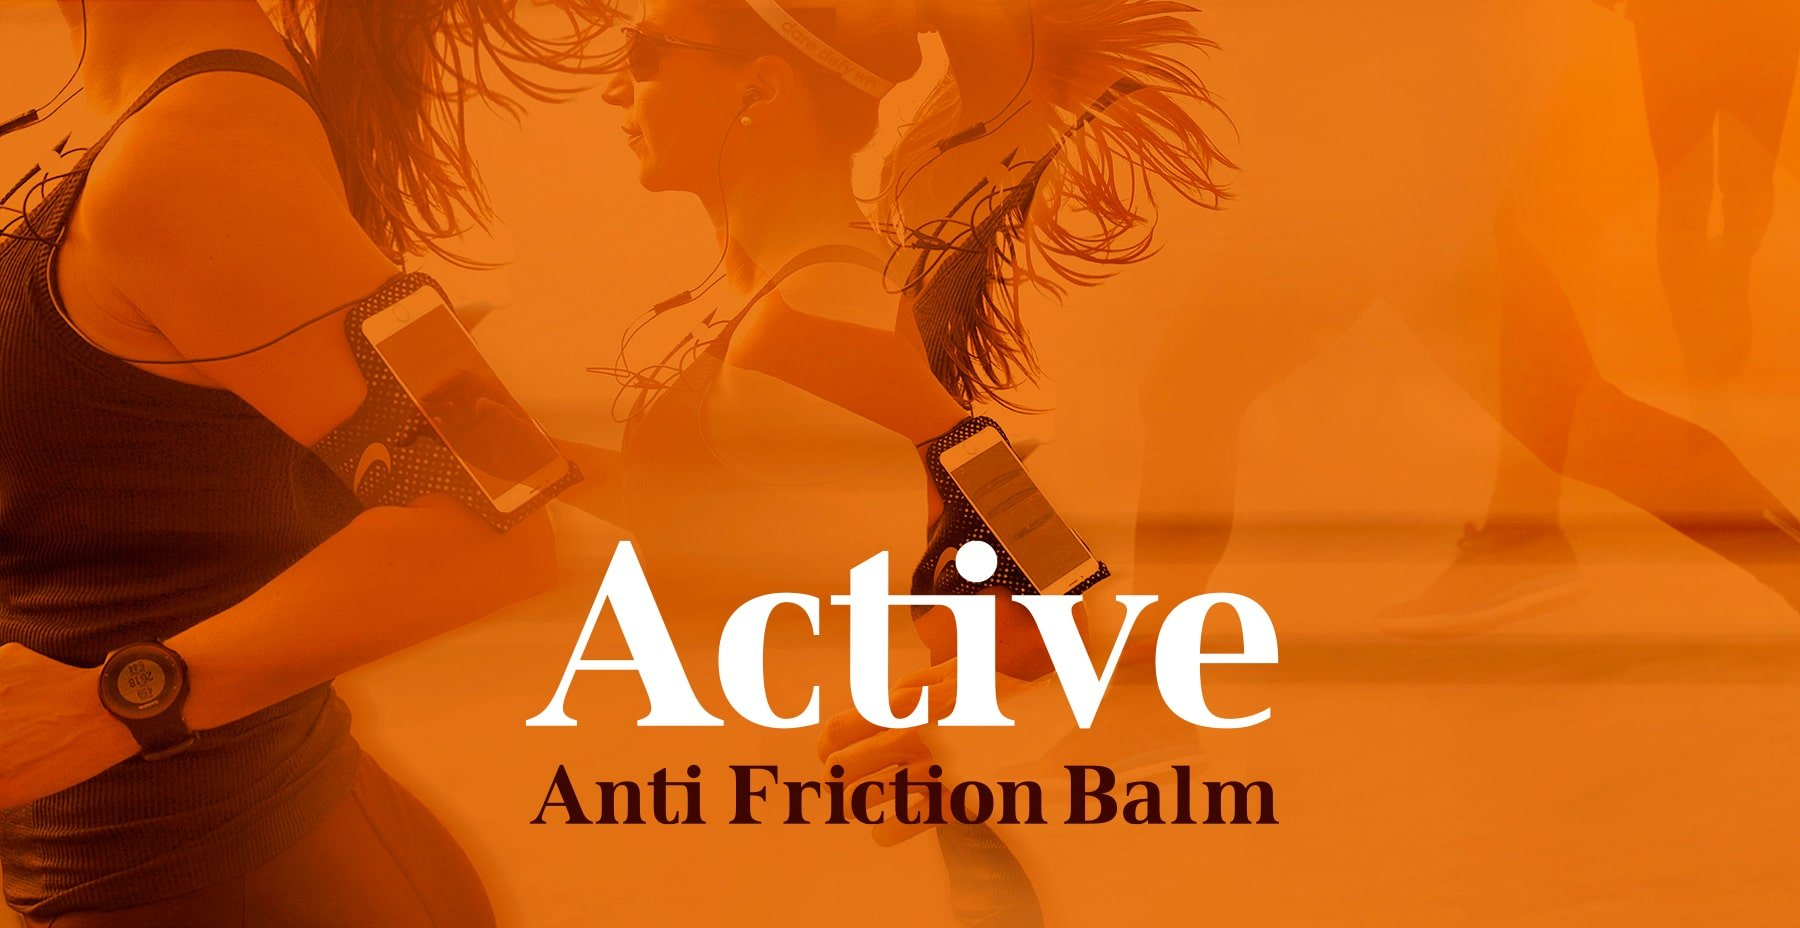 Active Anti Friction Balm